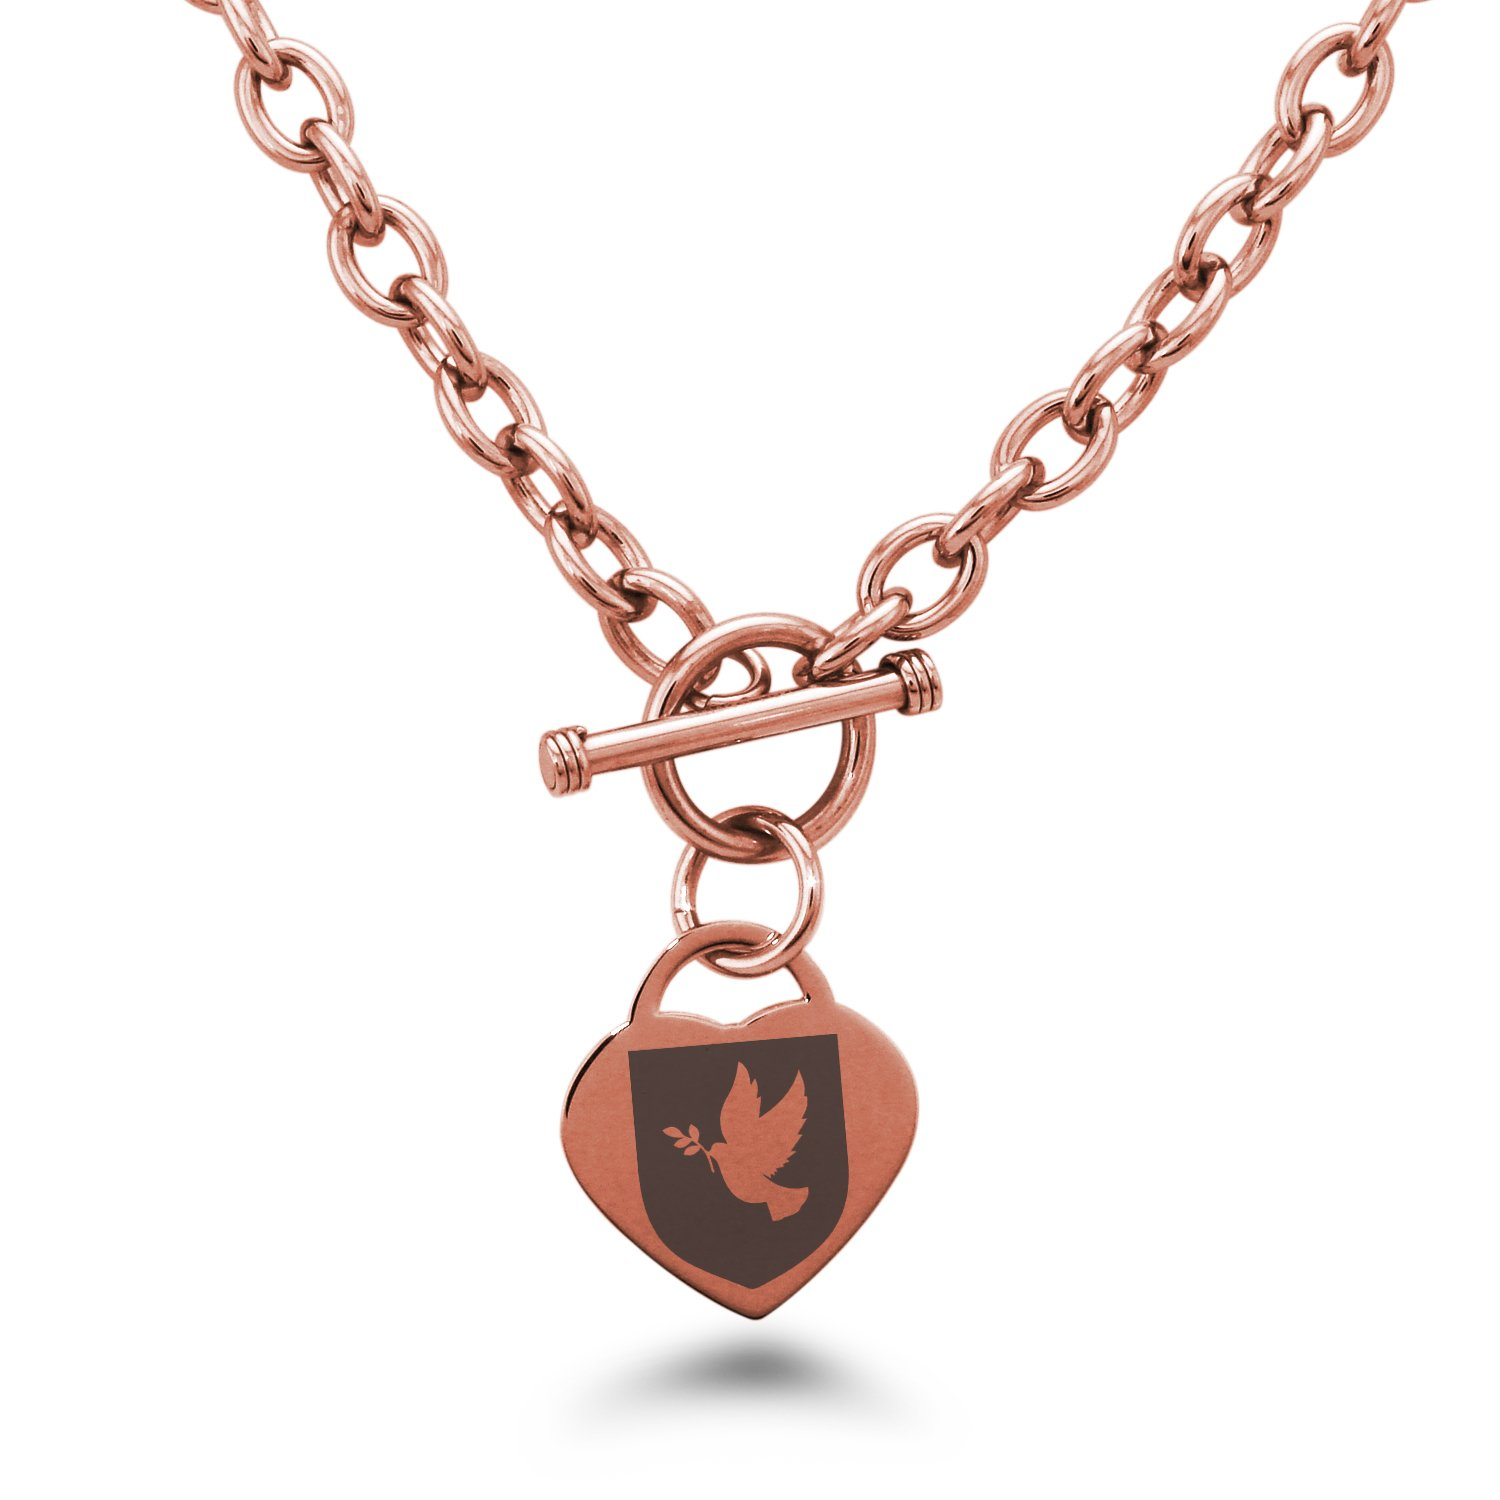 Tioneer Rose Gold Plated Stainless Steel Dove Peace Coat of Arms Shield Symbols Heart Charm, Necklace Only